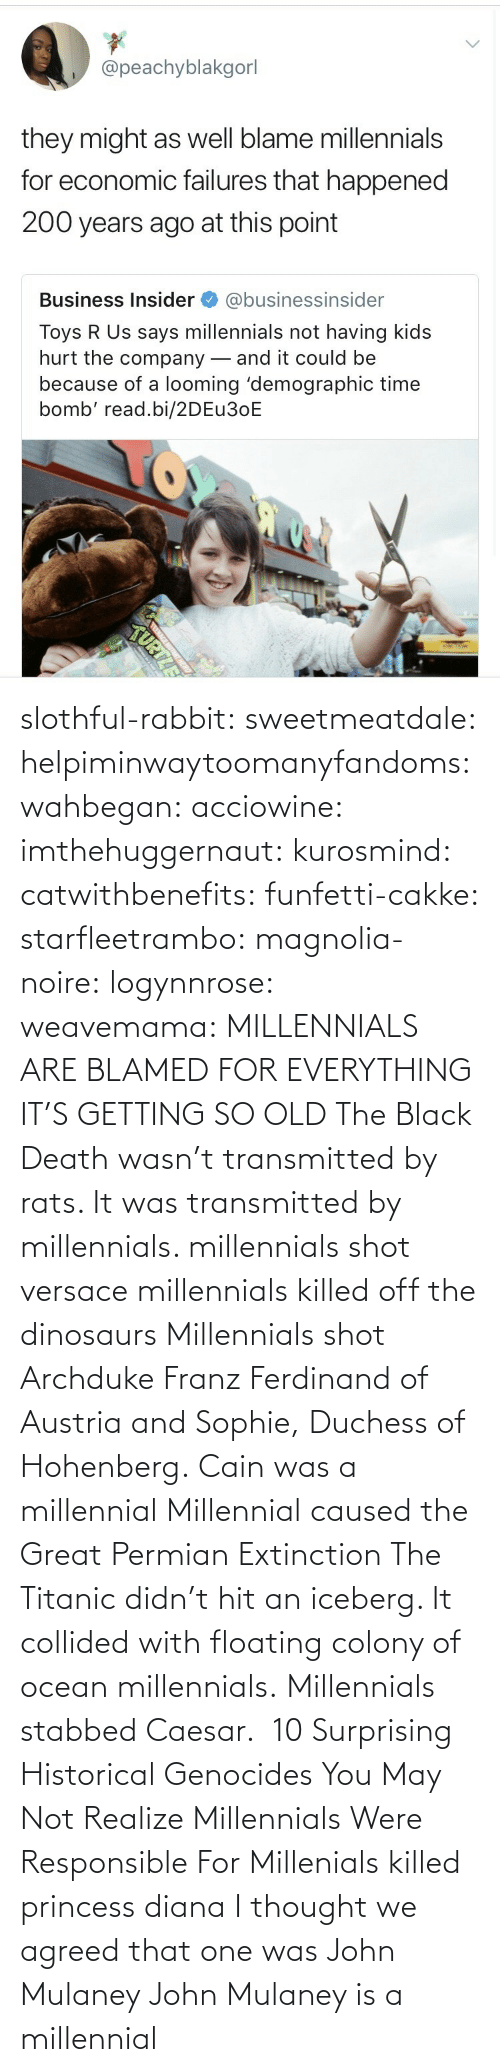 Titanic: slothful-rabbit: sweetmeatdale:  helpiminwaytoomanyfandoms:   wahbegan:  acciowine:  imthehuggernaut:  kurosmind:   catwithbenefits:  funfetti-cakke:  starfleetrambo:  magnolia-noire:  logynnrose:  weavemama:  MILLENNIALS ARE BLAMED FOR EVERYTHING IT'S GETTING SO OLD  The Black Death wasn't transmitted by rats. It was transmitted by millennials.    millennials shot versace   millennials killed off the dinosaurs    Millennials shot Archduke Franz Ferdinand of Austria and Sophie, Duchess of Hohenberg.   Cain was a millennial  Millennial caused the Great Permian Extinction   The Titanic didn't hit an iceberg. It collided with floating colony of ocean millennials.  Millennials stabbed Caesar.   10 Surprising Historical Genocides You May Not Realize Millennials Were Responsible For    Millenials killed princess diana    I thought we agreed that one was John Mulaney     John Mulaney is a millennial